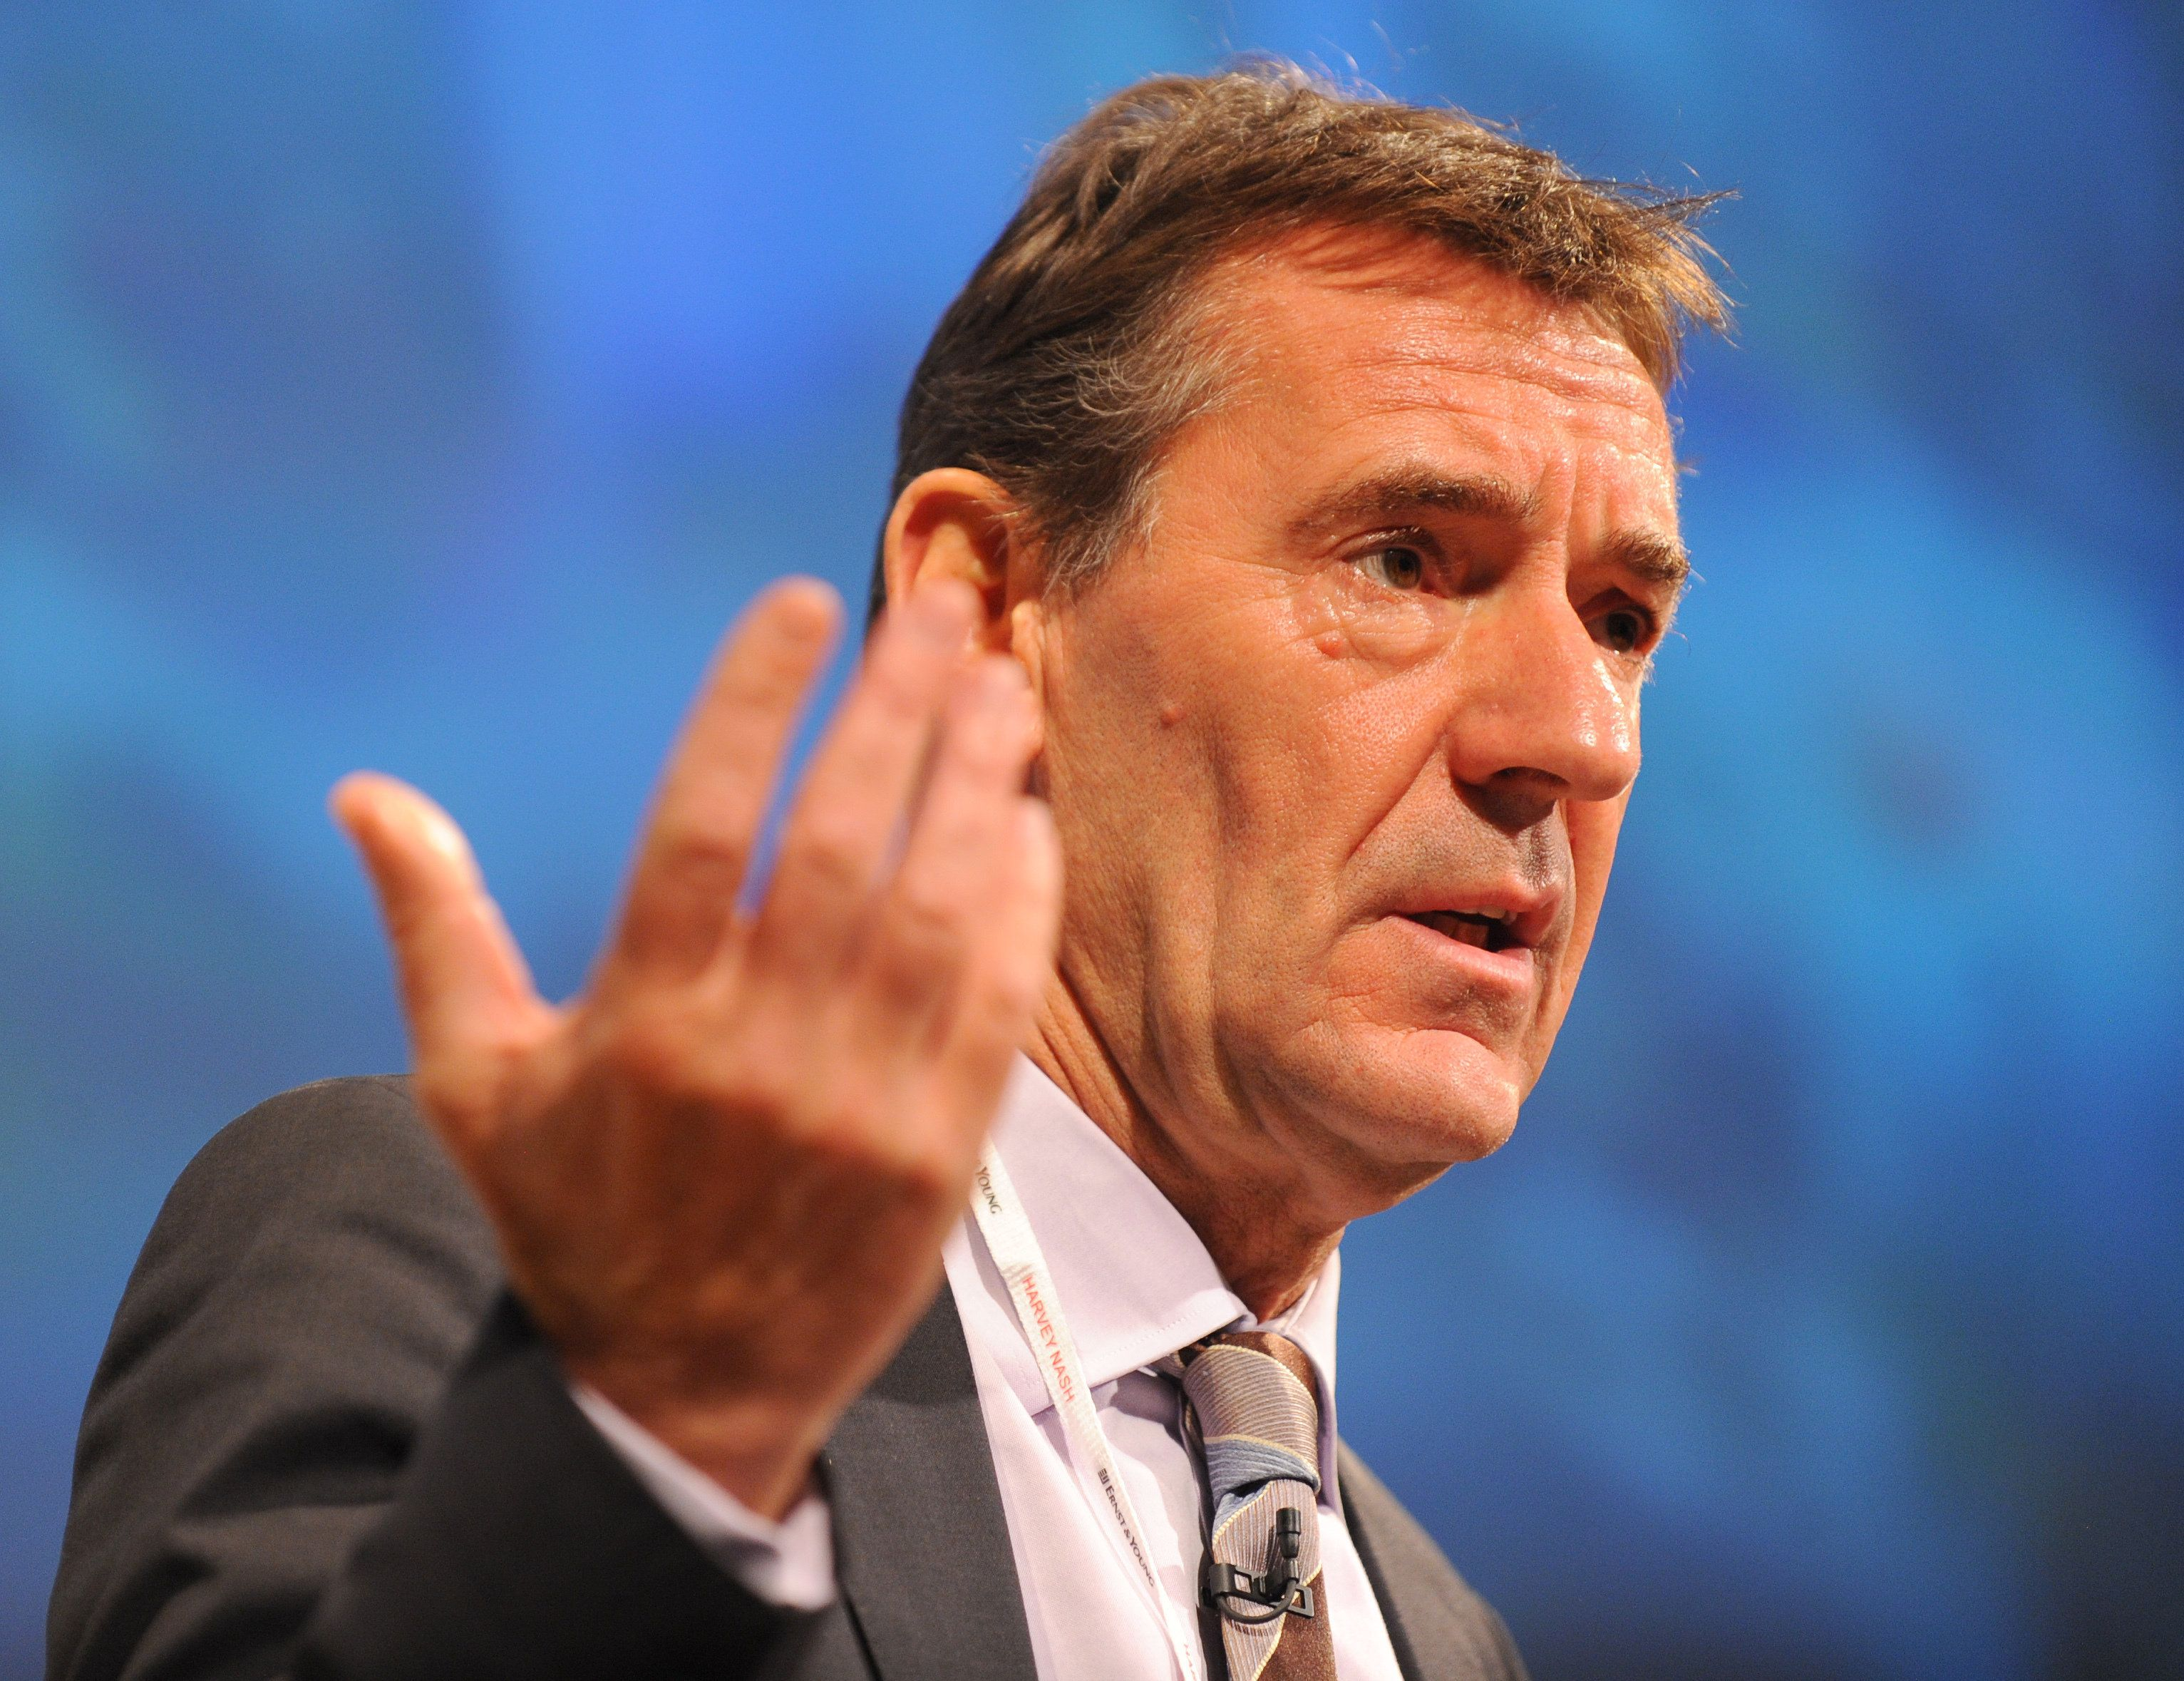 Ex-minister Jim O'Neill has accused the government of making 'misleading' claims about education funding...